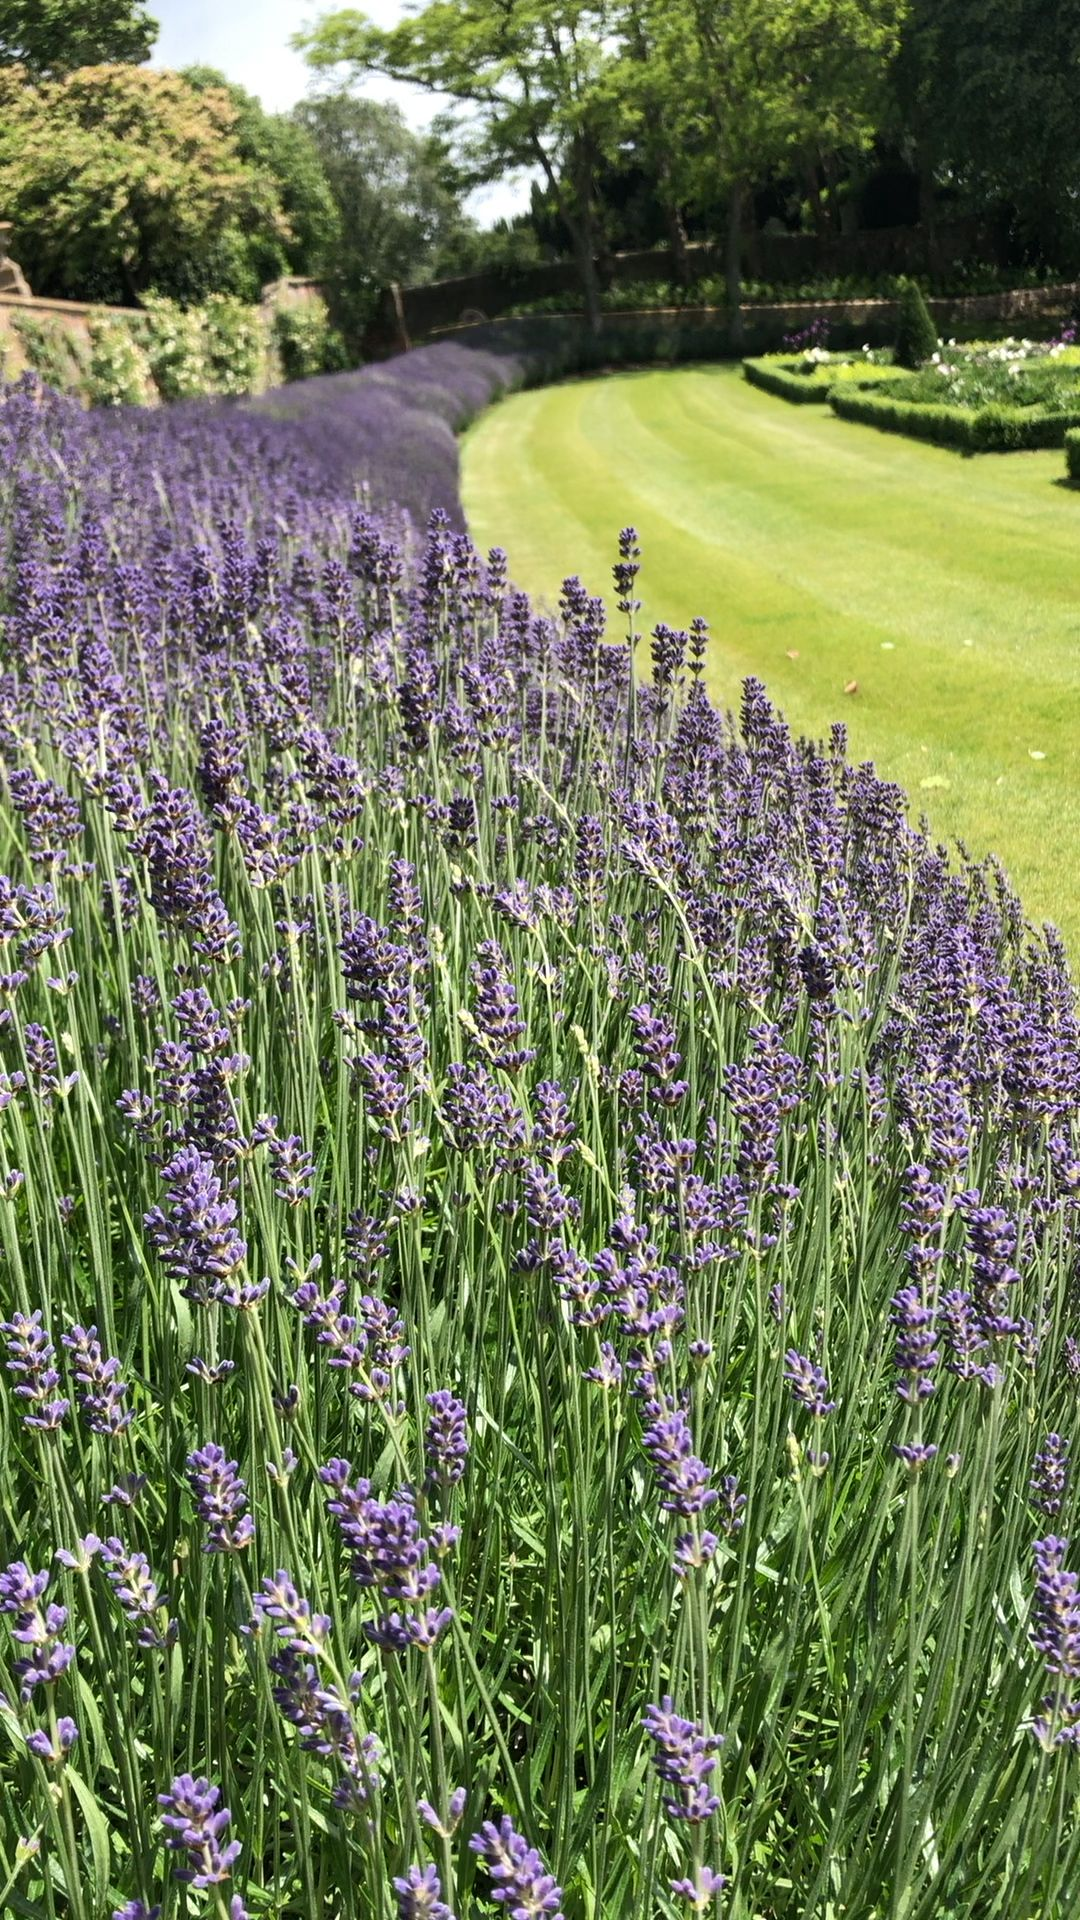 Photo of Wind blowing through the lavender